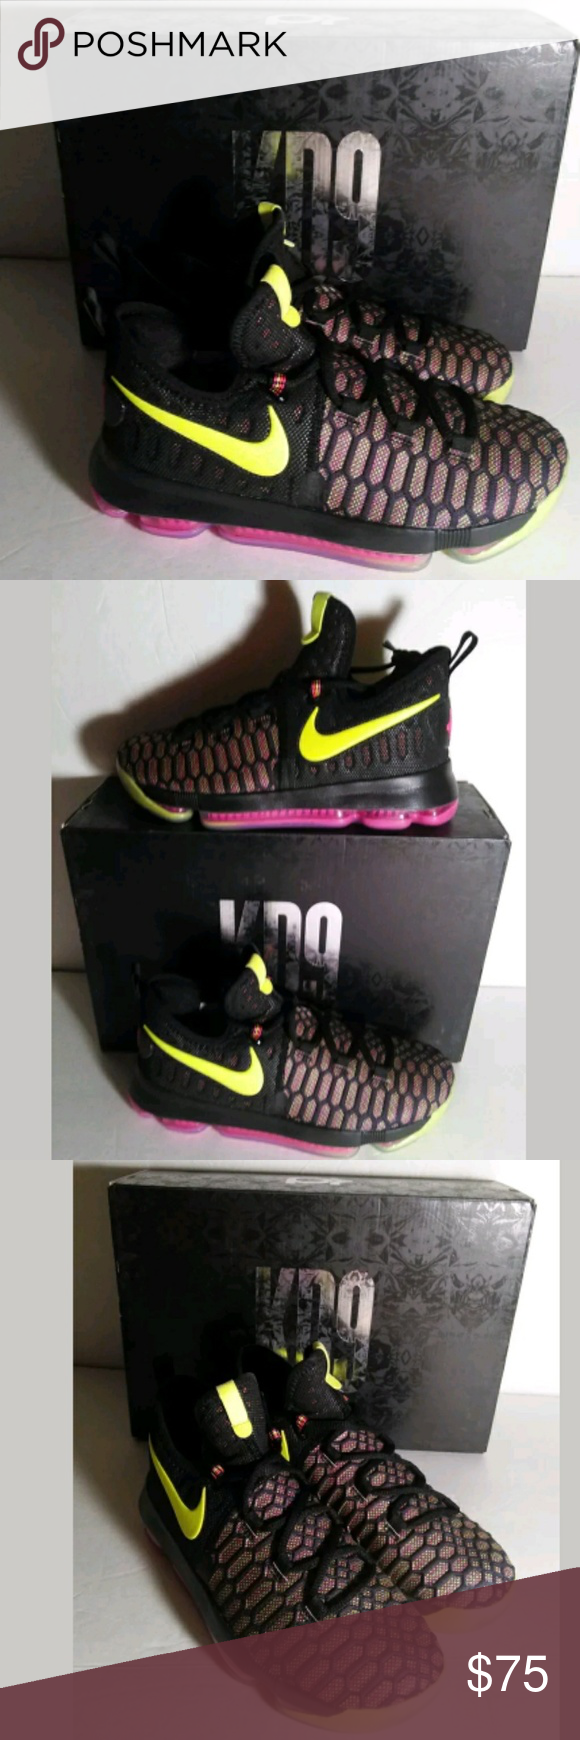 33d12650cac Nike Zoom KD9 Unlimited OC Olympic Shoes Brand New Nike Zoom KD9 Kevin  Durant s Unlimited OC